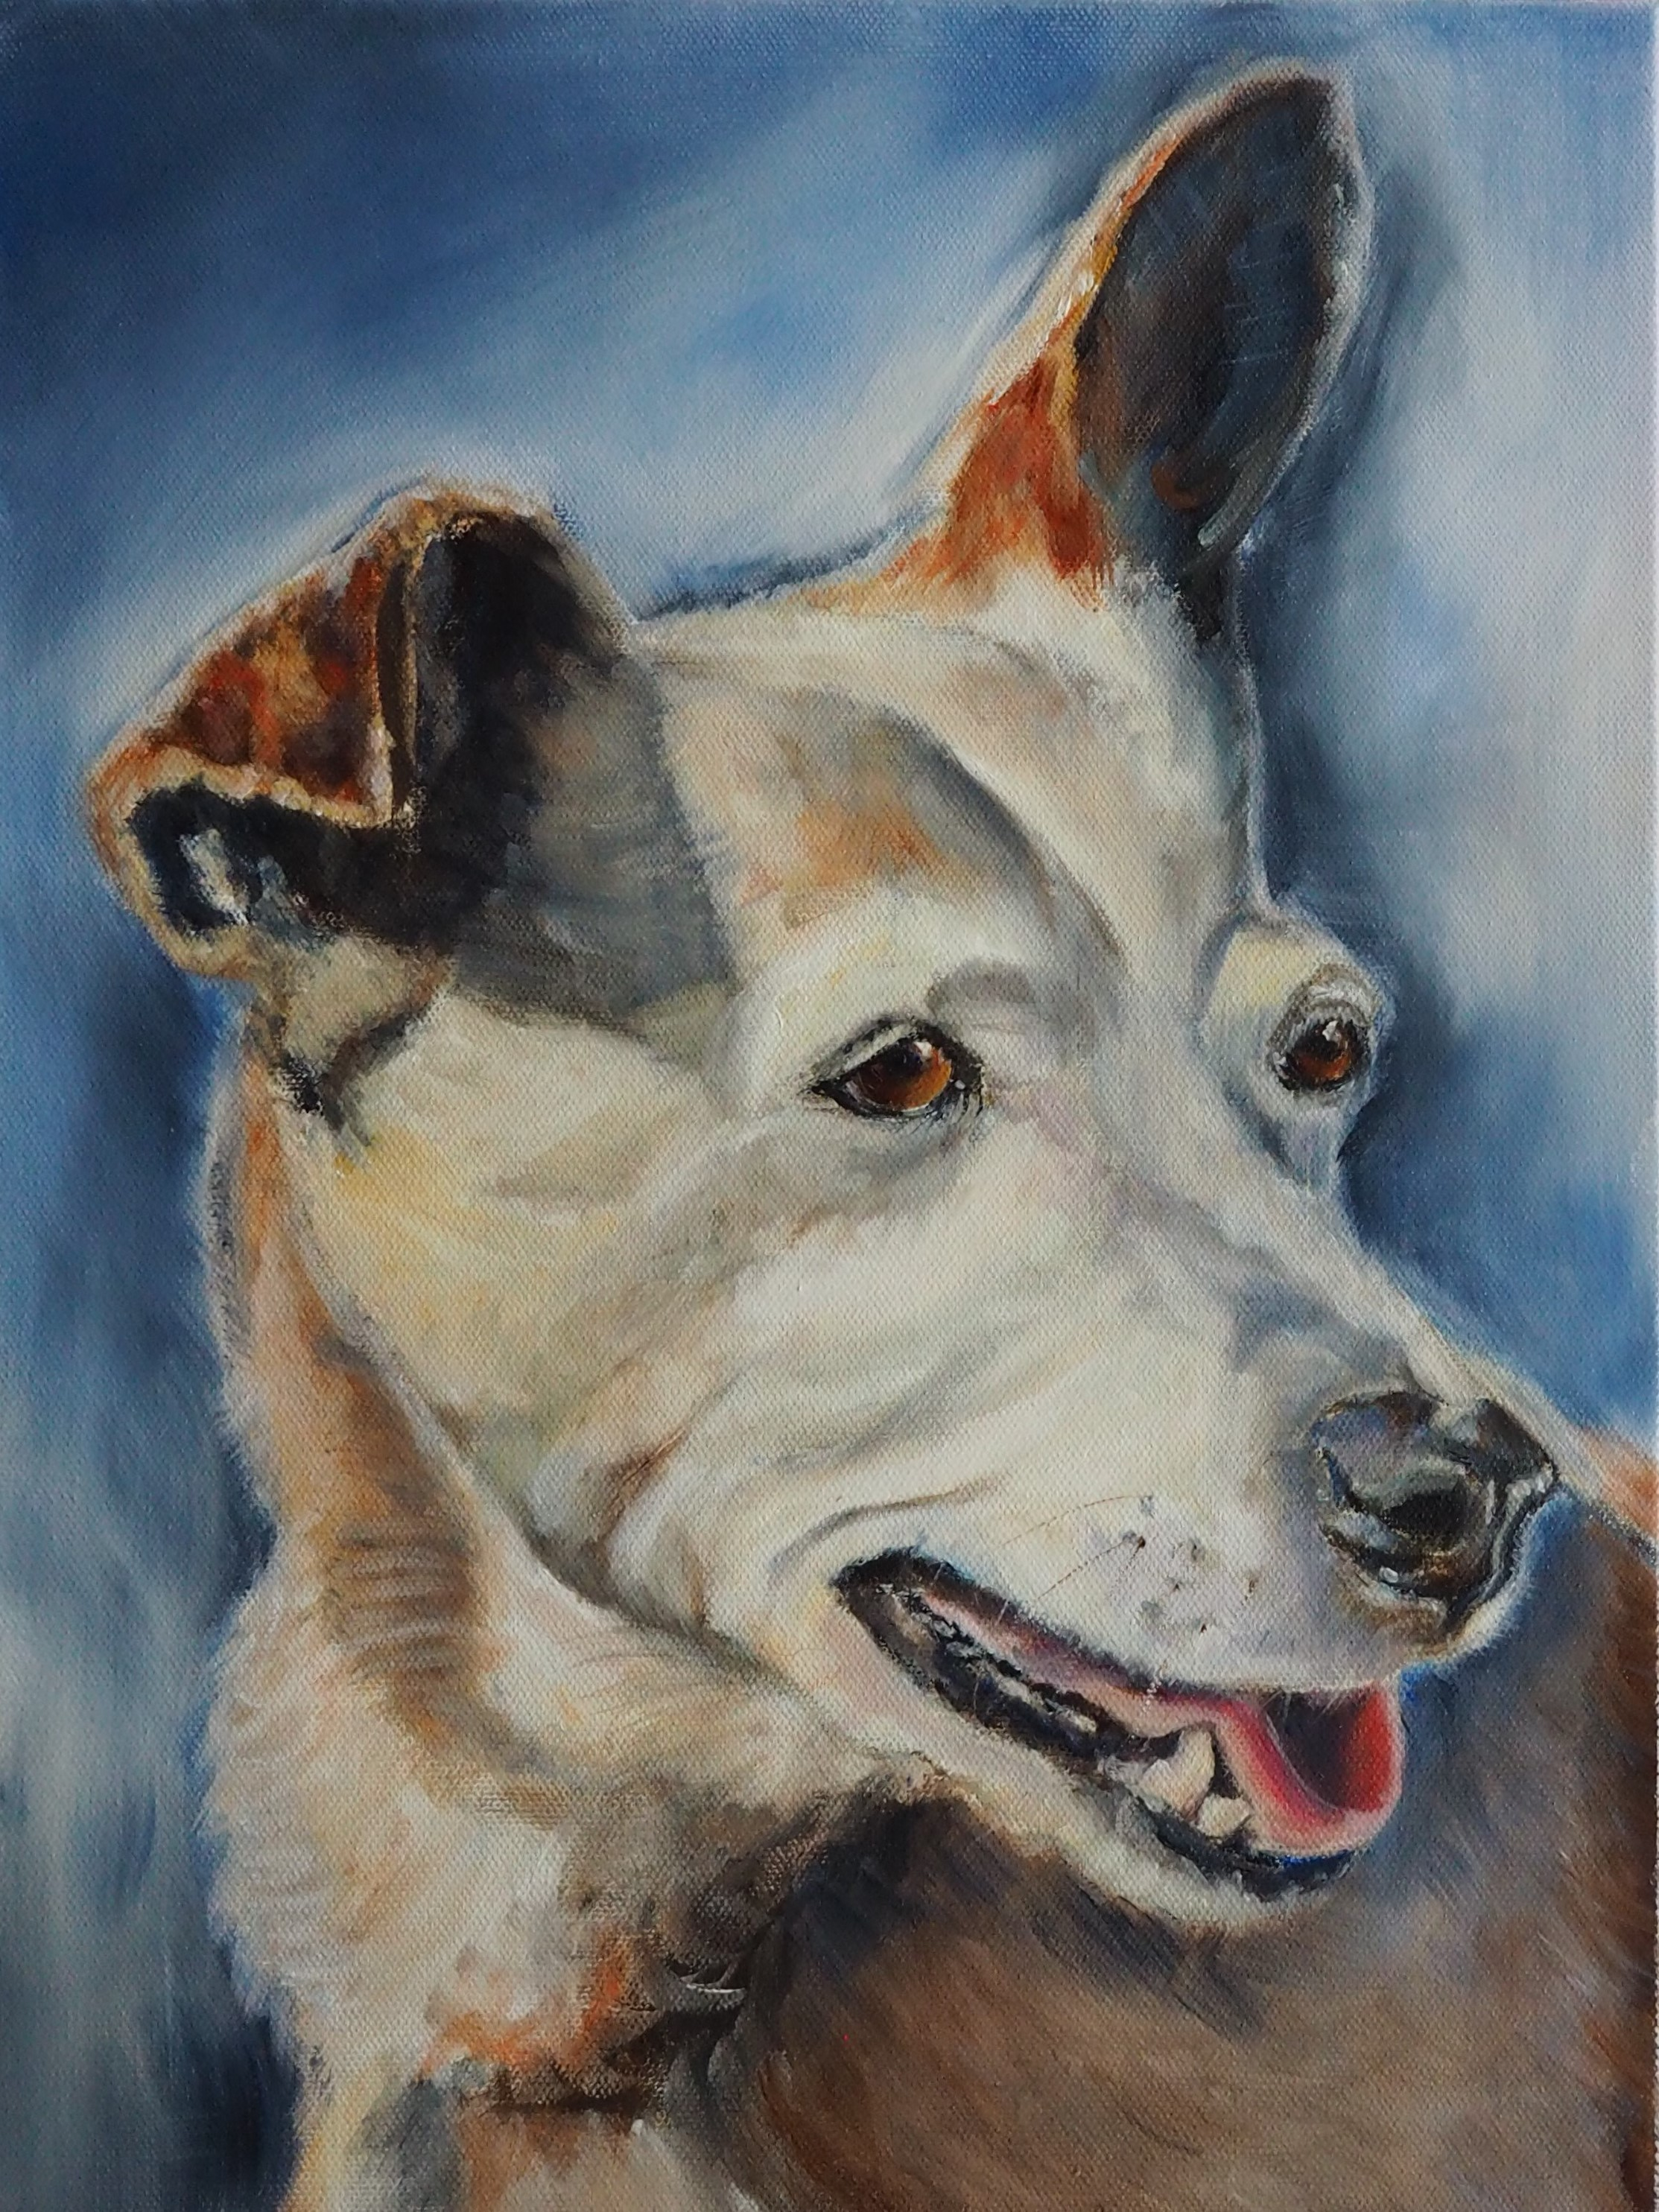 Goldie's Memorial Portrait - It took me a few months before I could tackle painting her memorial portrait. When I paint, I spend a lot of time talking to the animal and getting to know them as their image grows on my canvas. But when I started working on Goldie's portrait, I discovered that it was so healing. I started remembering all those fun times we had together, and all the love she gave me, and as the painting emerged, I felt like she was back with me.It would be an absolute honor for me to help you remember your beloved friend whom you miss so much.